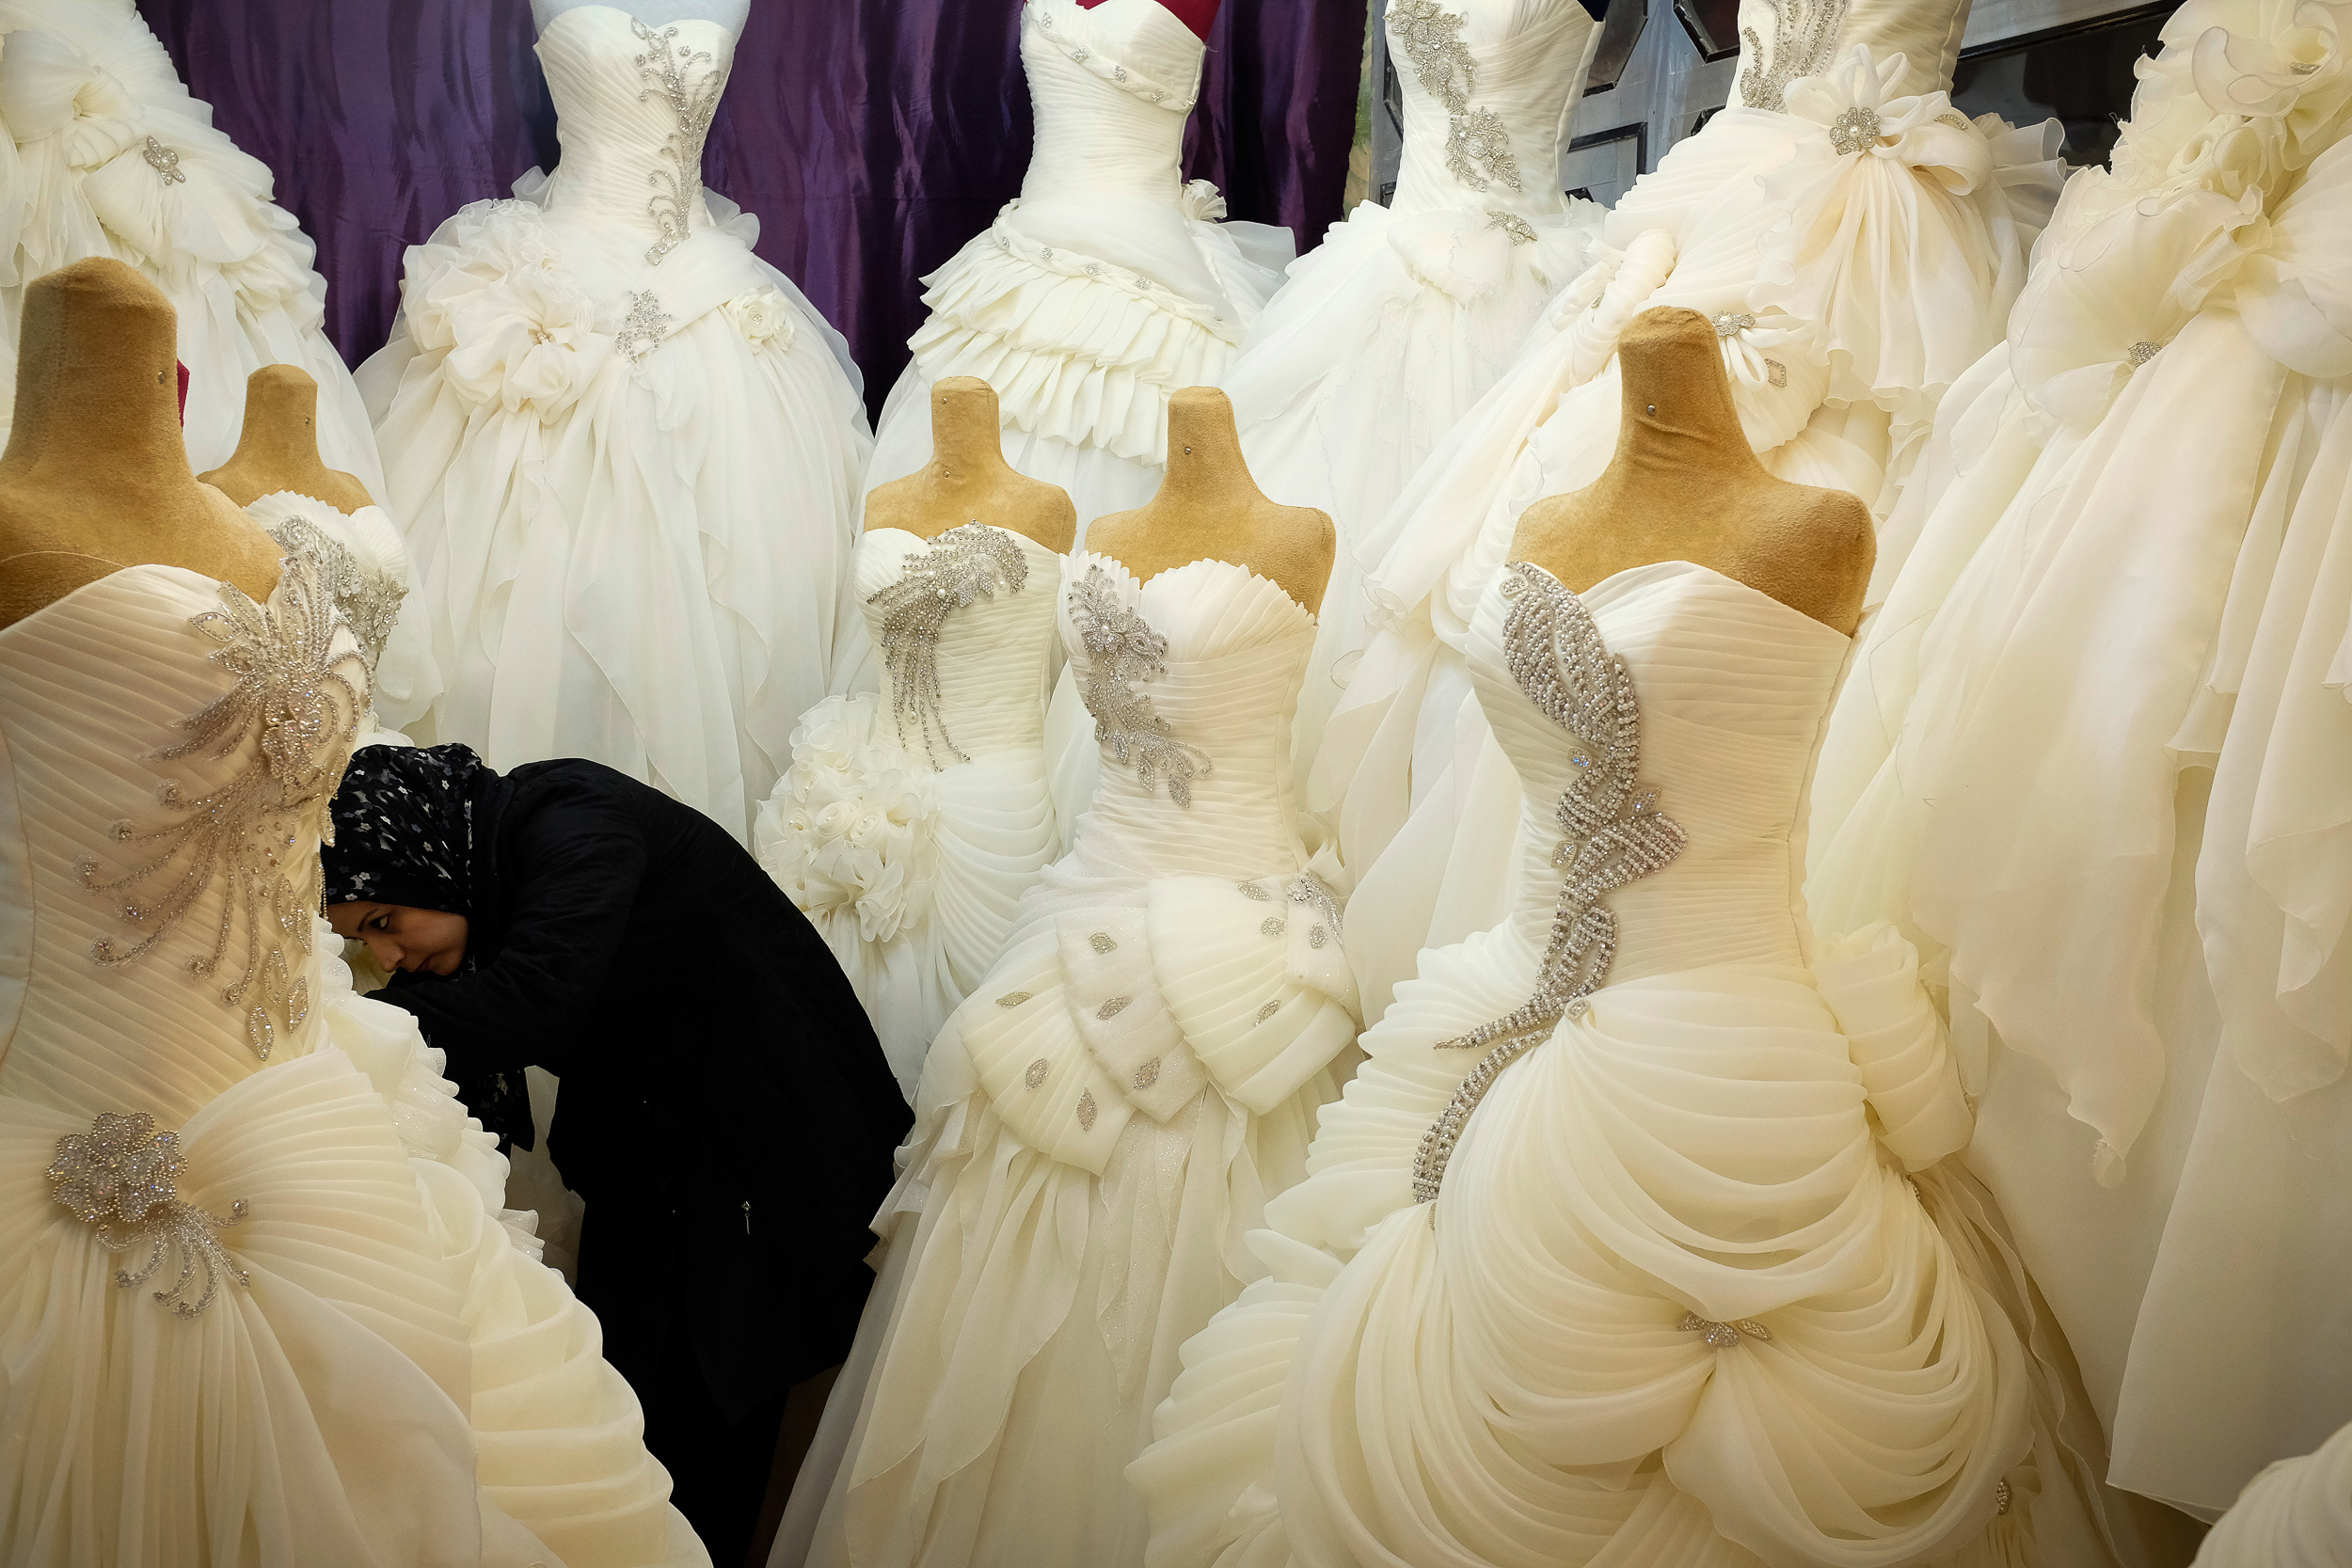 A shopkeeper straightens some wedding dresses in Kashan. Despite women being very restricted in how they can dress in public in a traditional city like Kashan, the full array of fashion – from iconic western brands (usually fake) to your more traditional Persian garments – can be found most large bazaars.